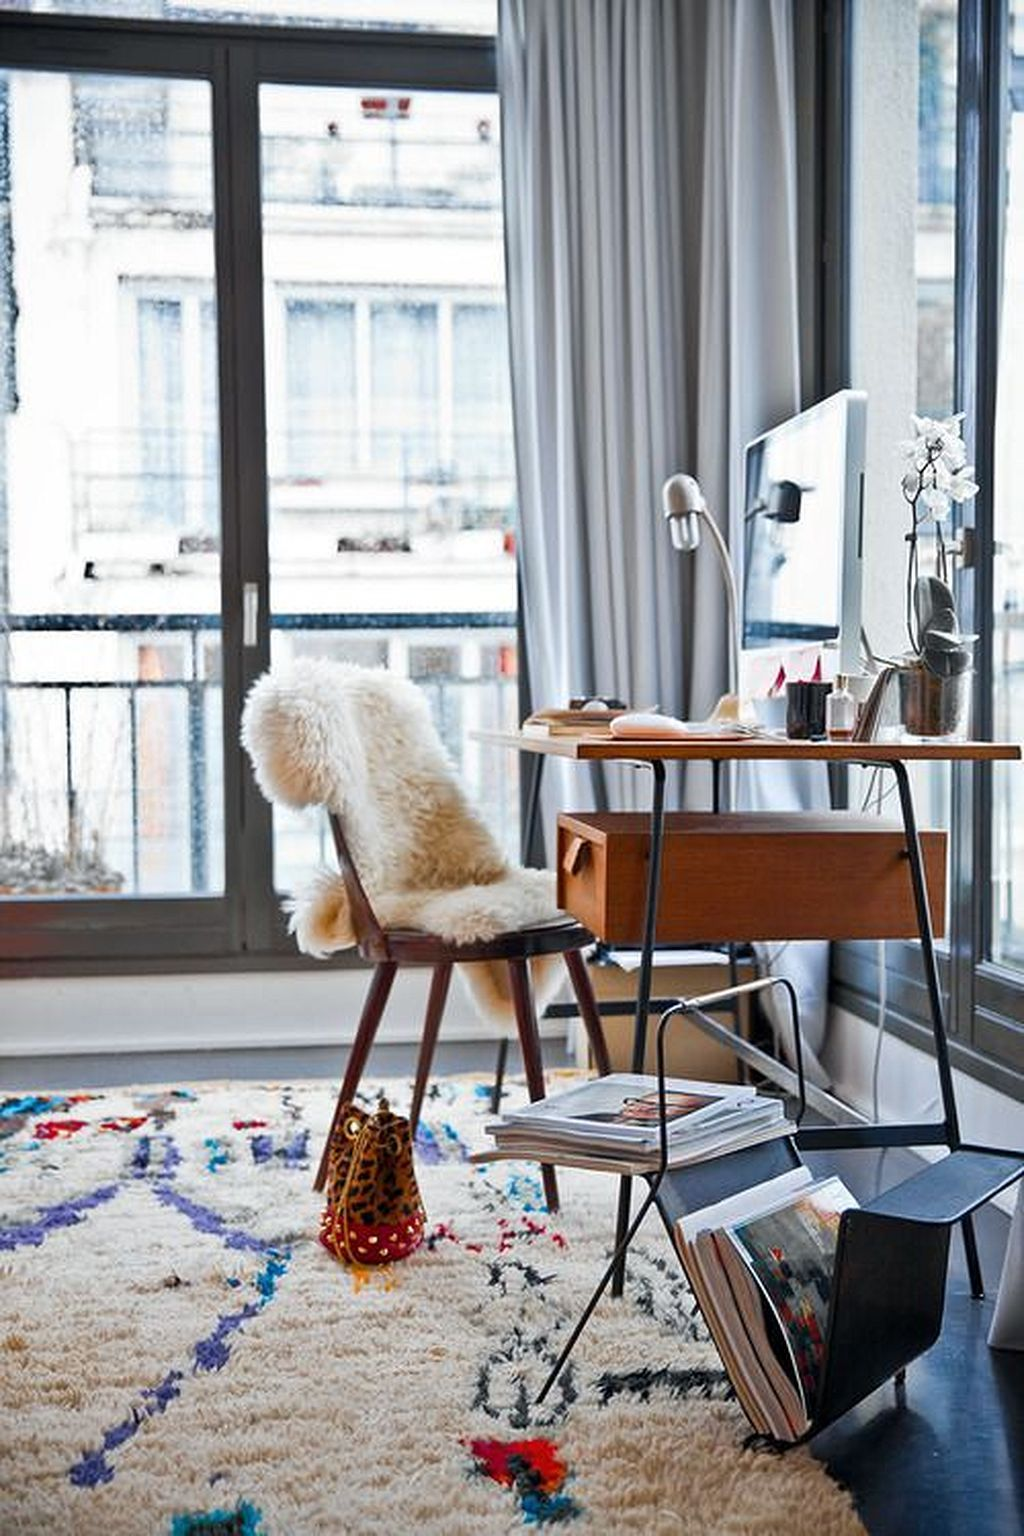 home office decorating ideas nyc. Great 20+ Stunning Boho Home Office Decor Https://modernhousemagz.com/20-stunning-boho-home-office-decor/ Decorating Ideas Nyc S